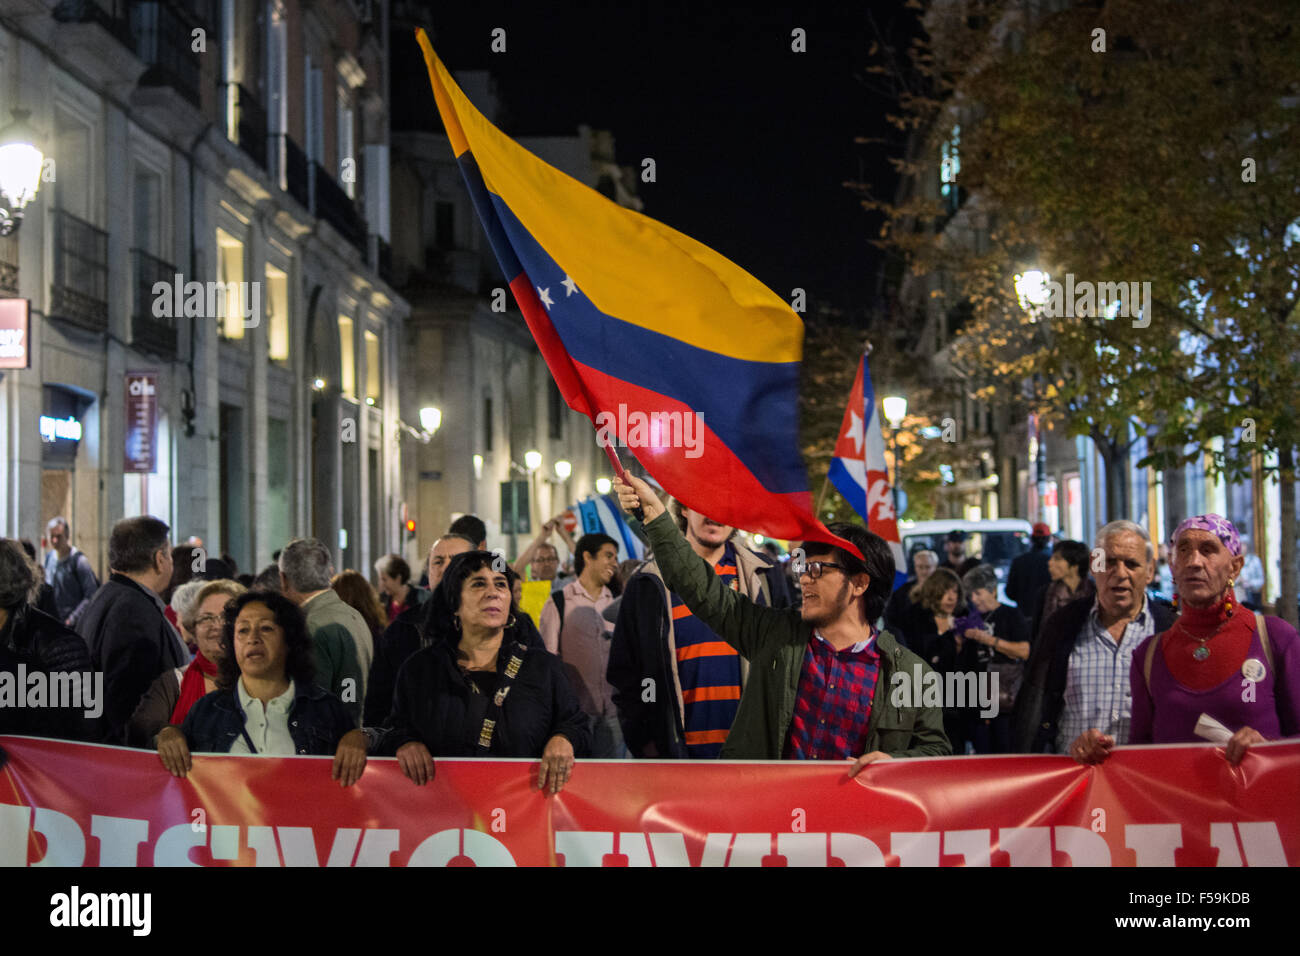 Madrid, Spain. 30th Oct, 2015. People bring banner and flags during a demonstration in Madrid against imperialism - Stock Image